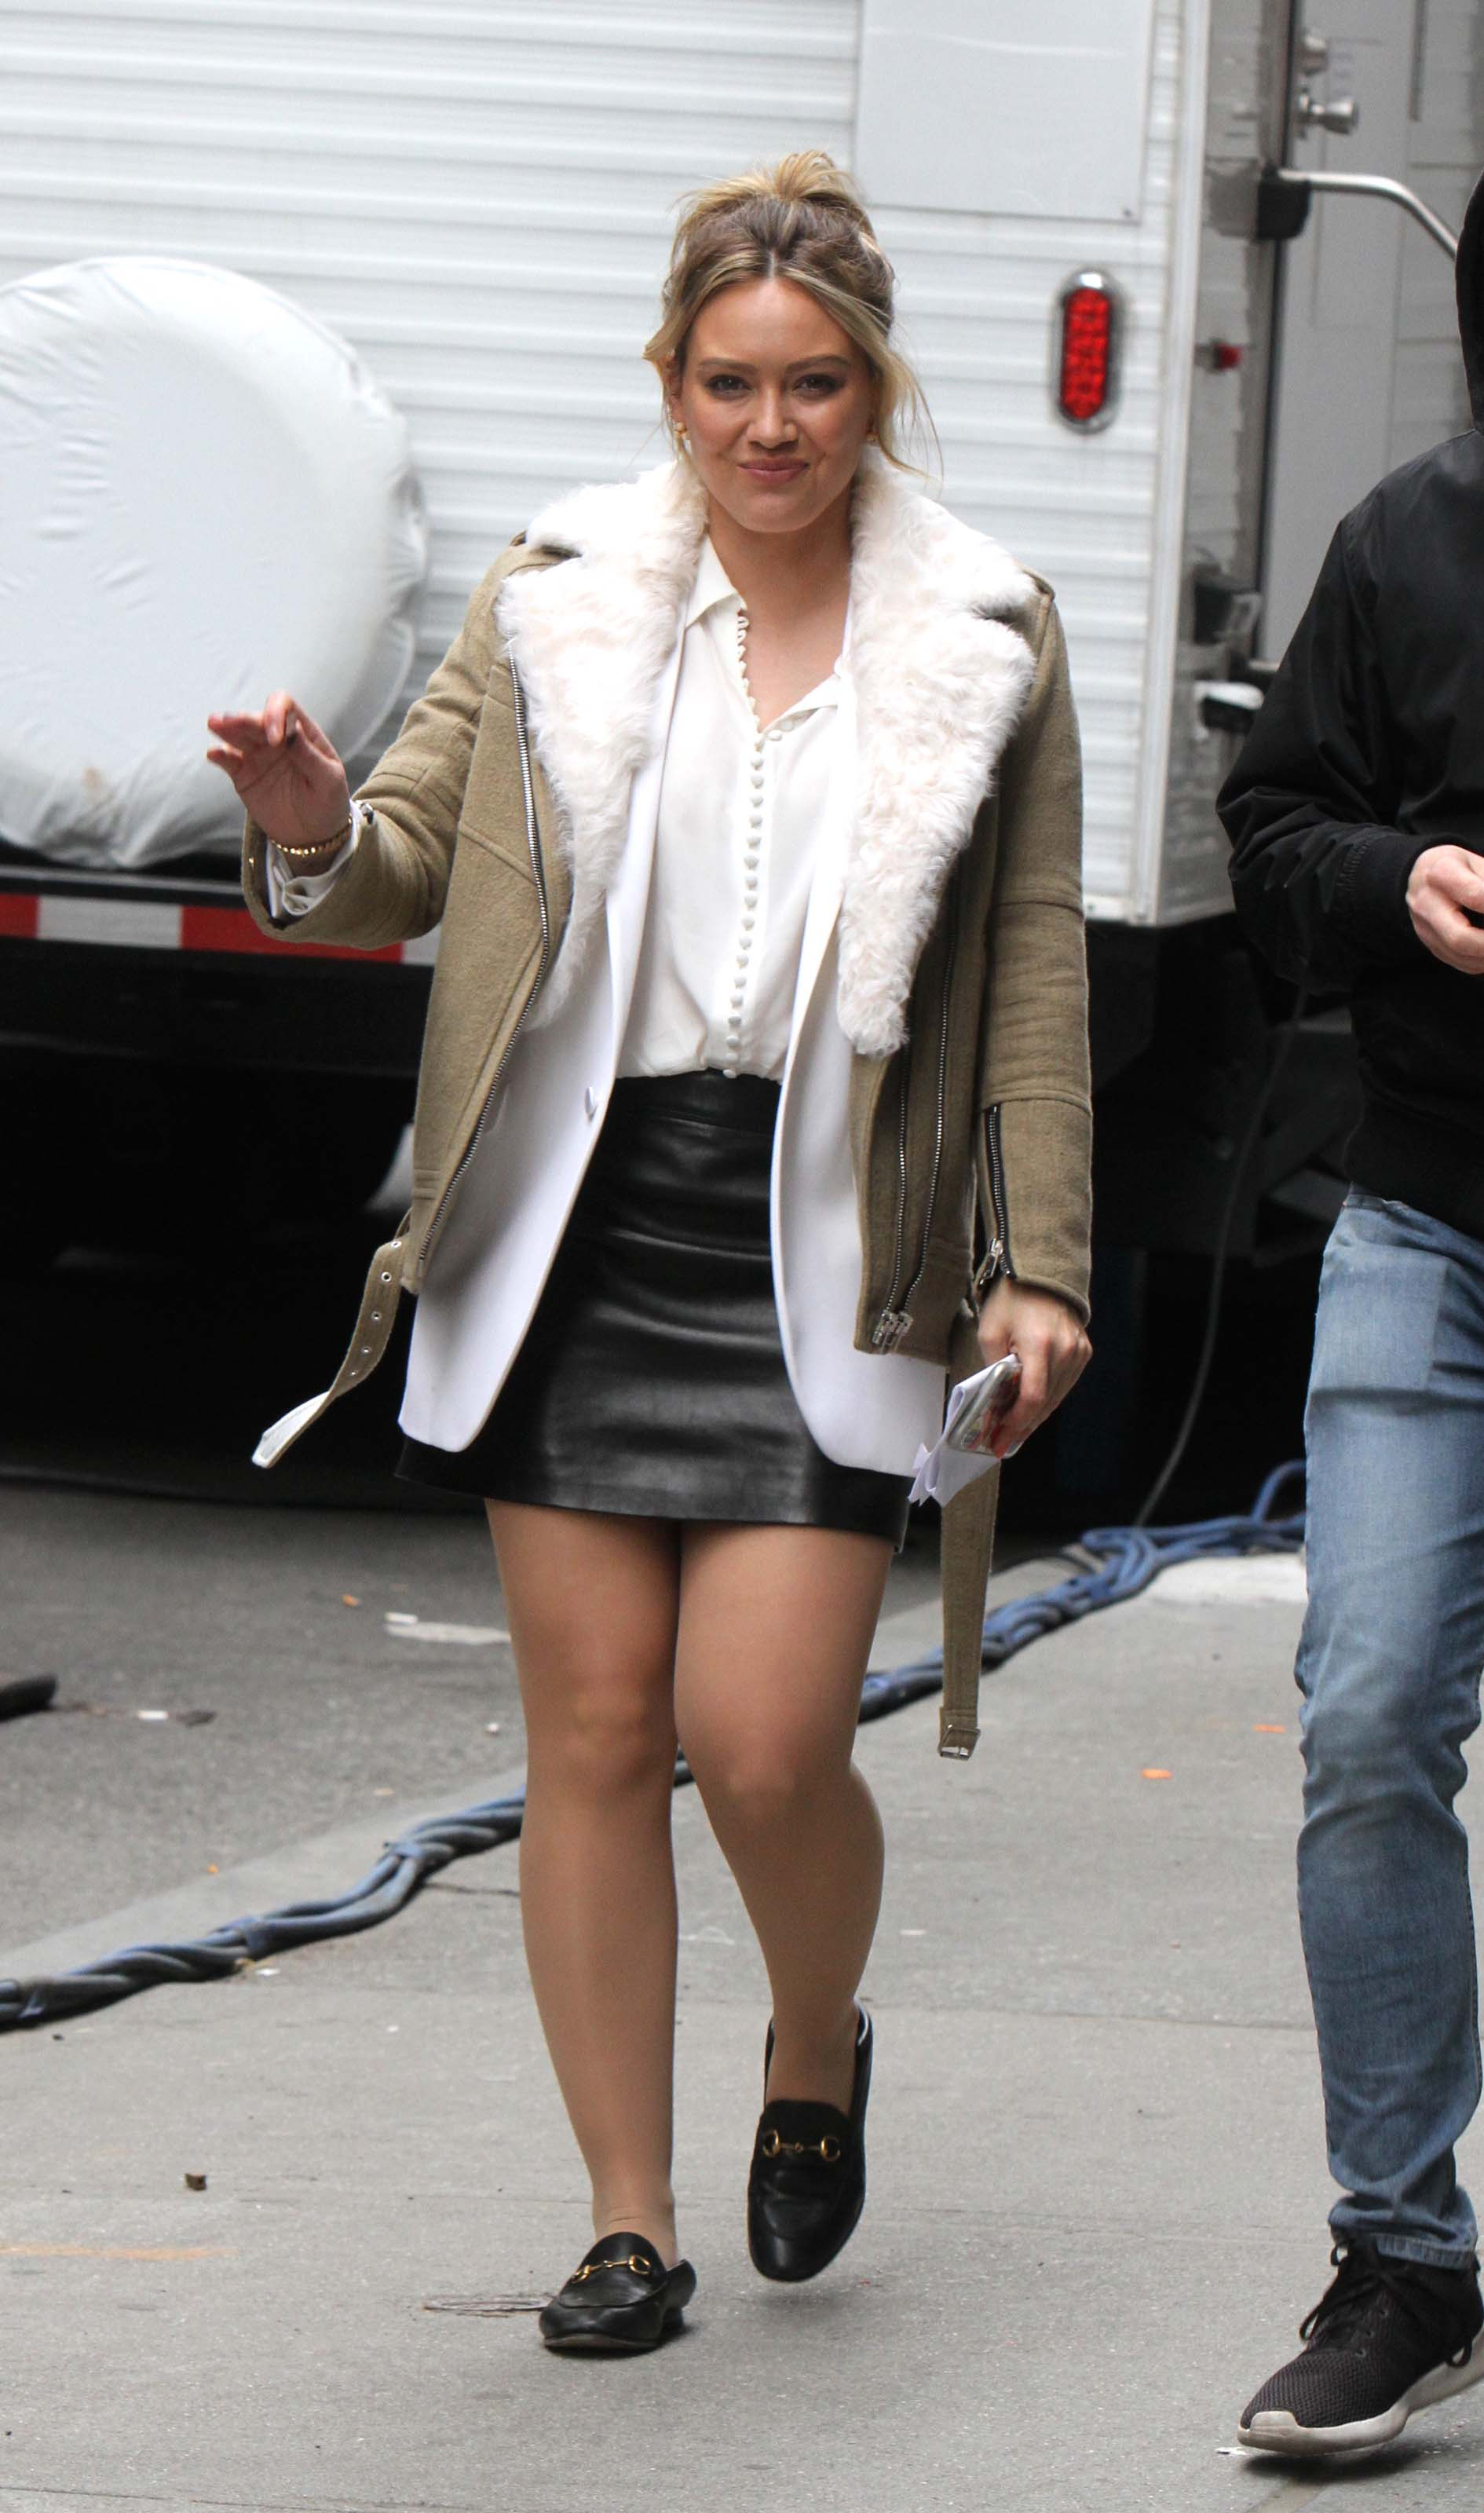 Hilary Duff on the set of Younger